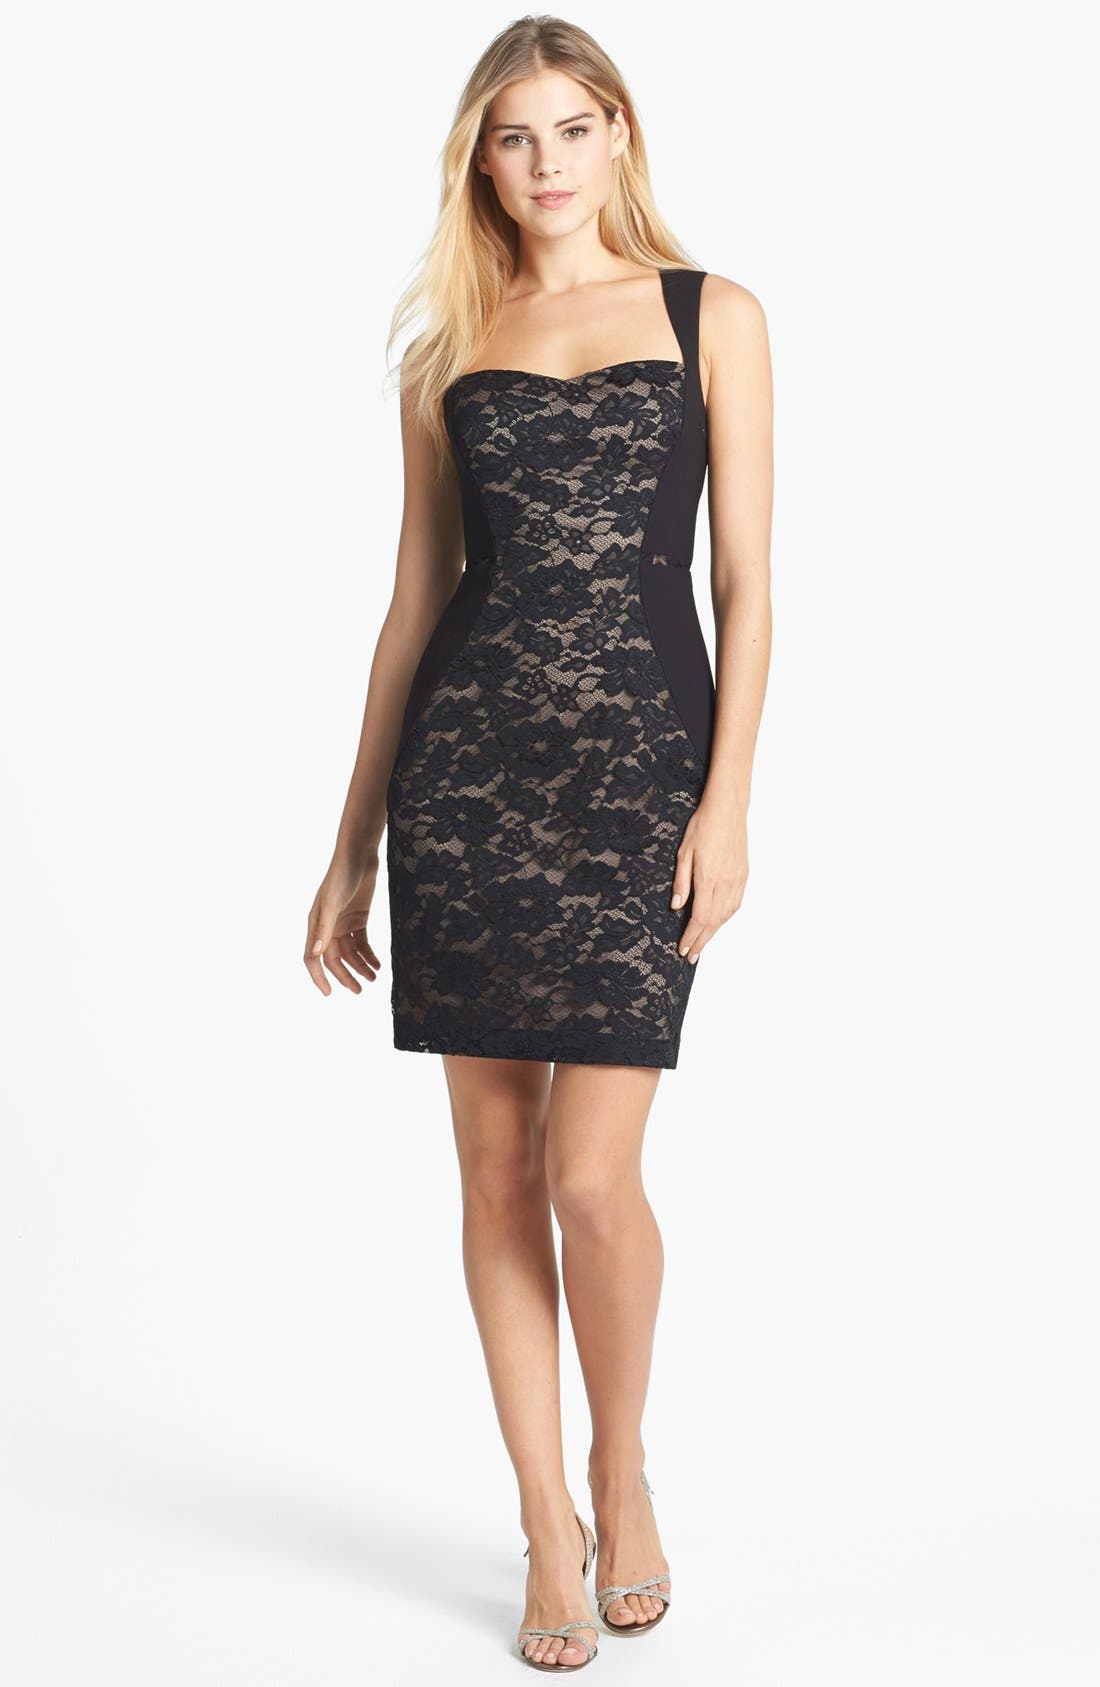 Alternate Image 1 Selected - Aidan Mattox Lace Paneled Body-Con Dress